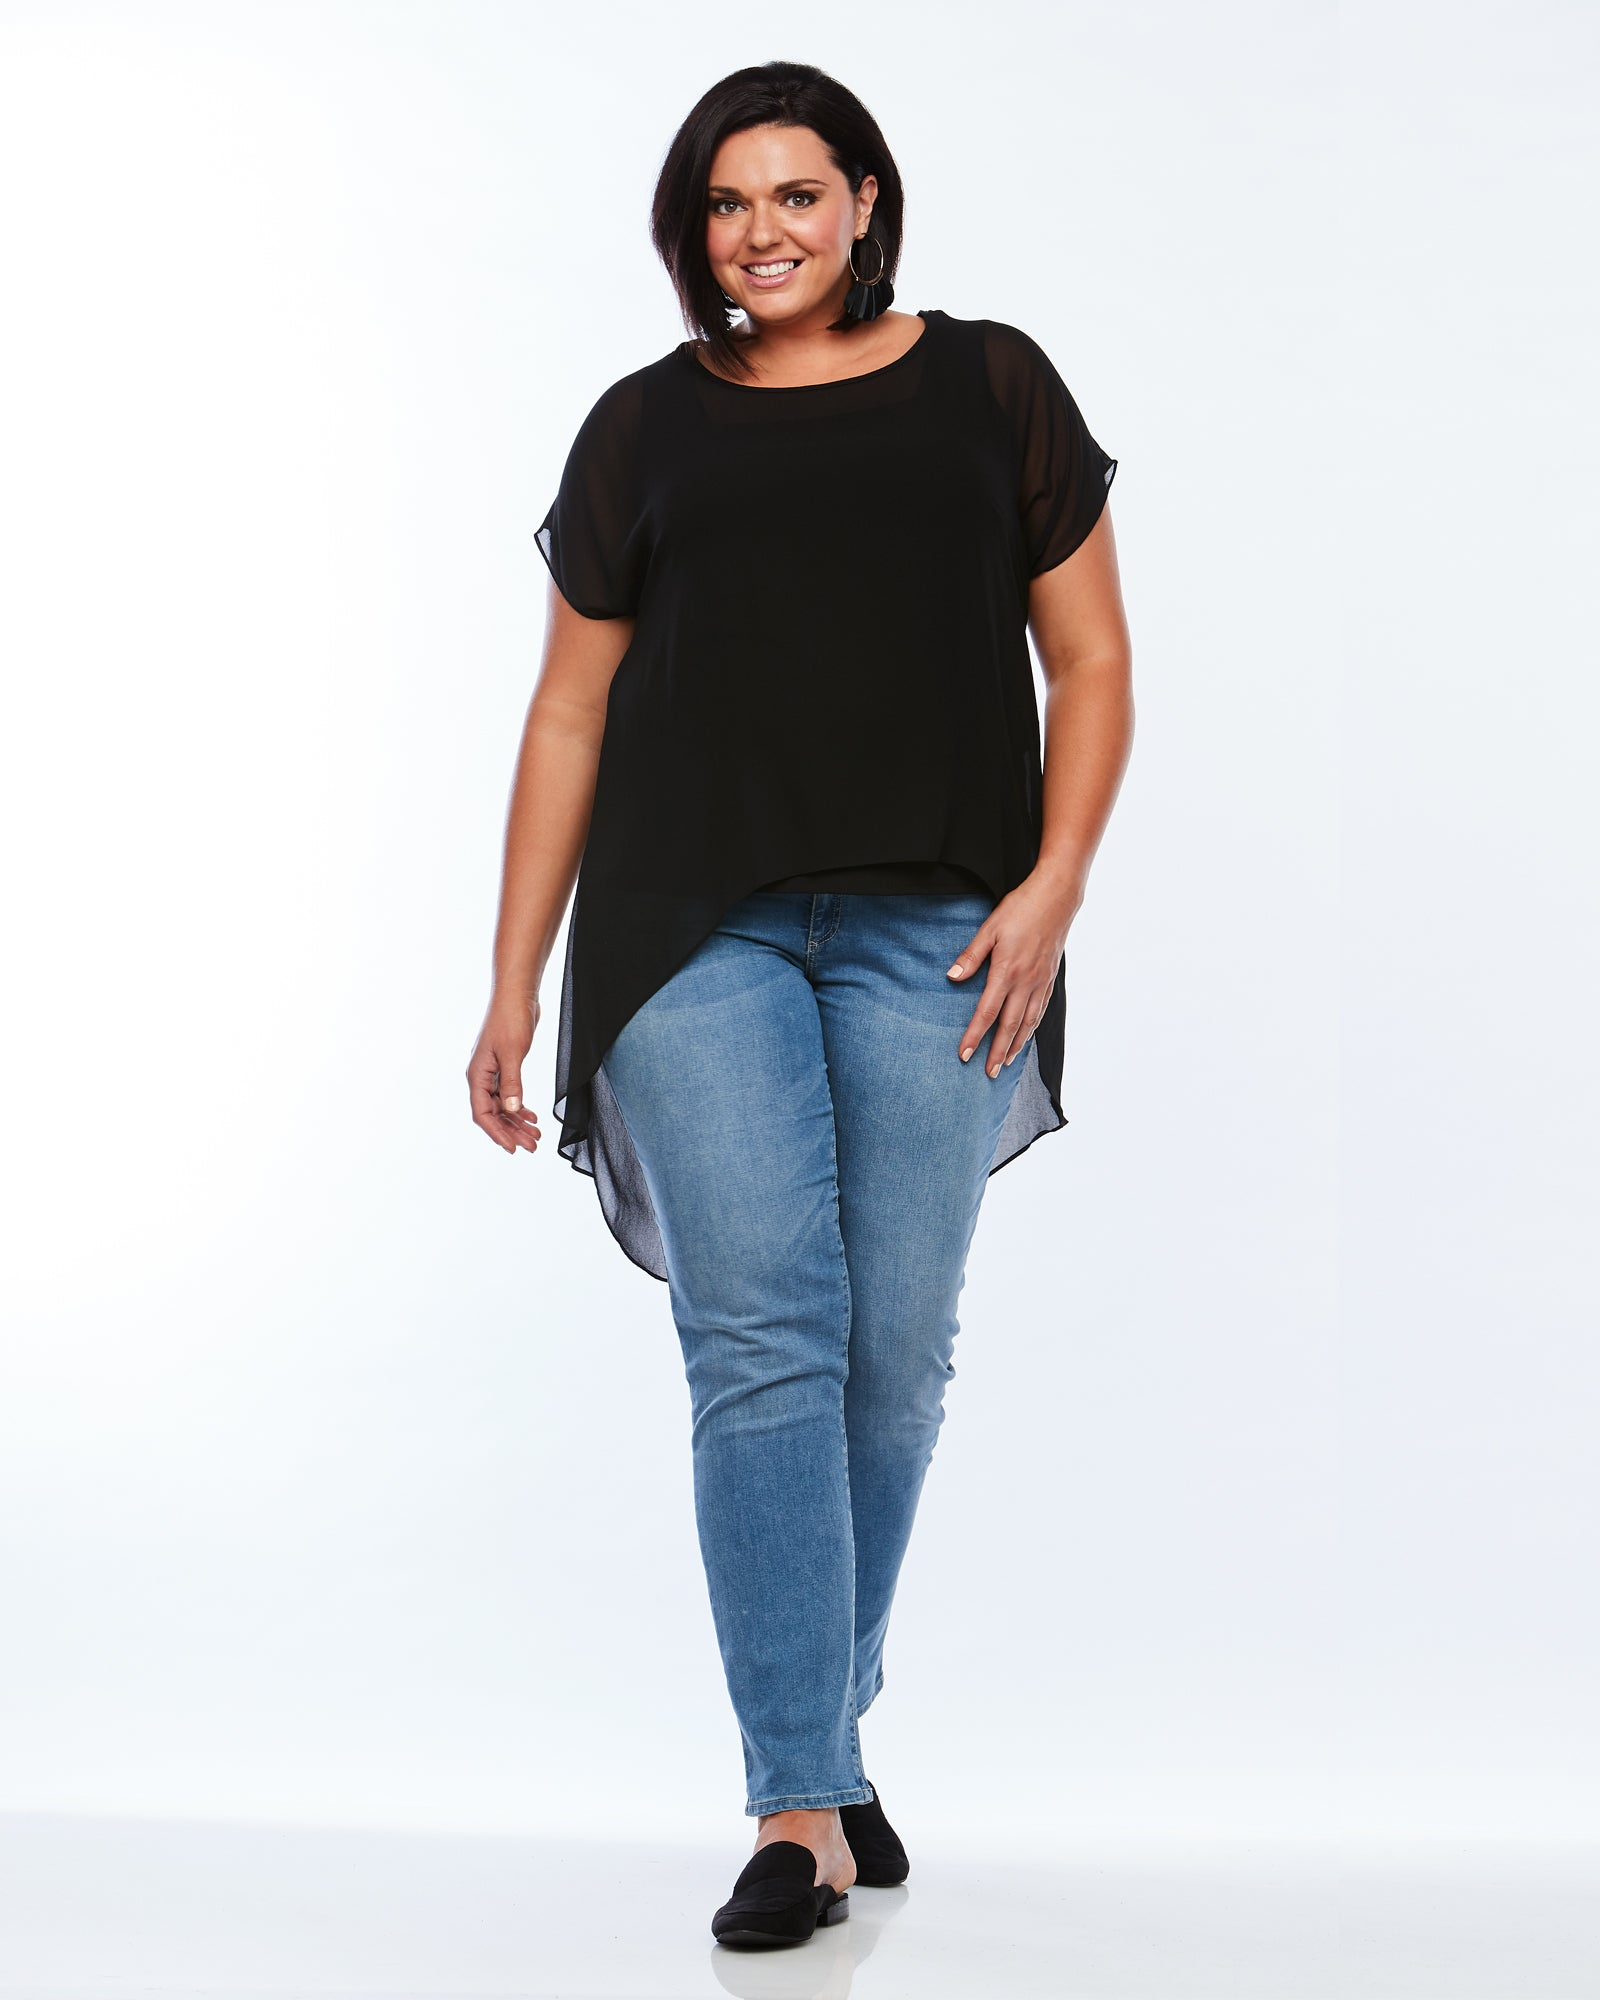 Room To Move Top, Plus size Top, black top